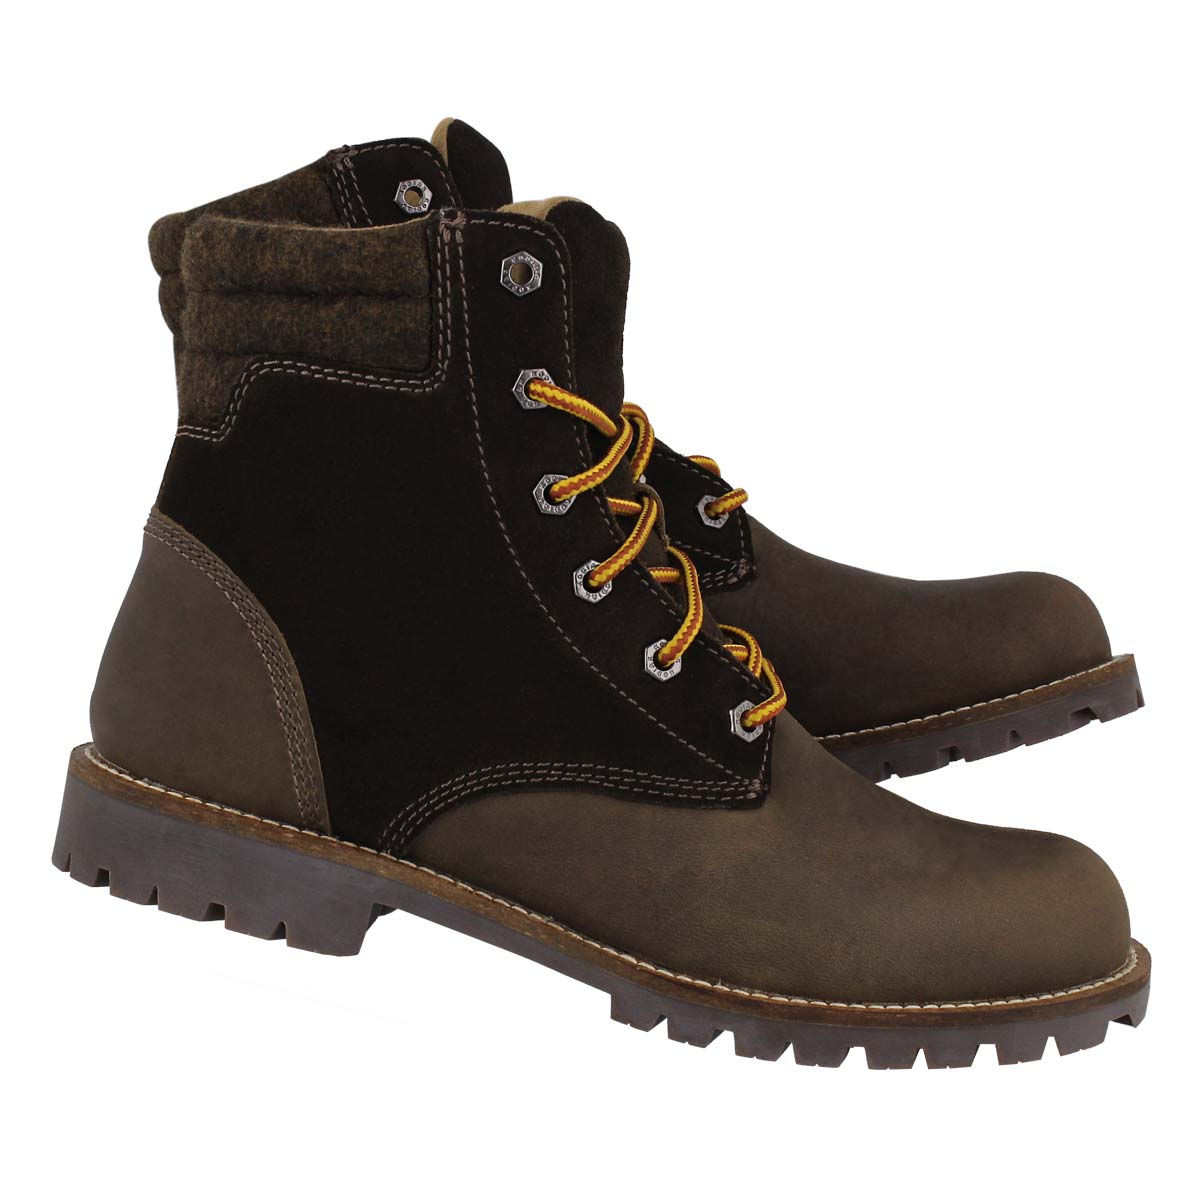 Mns Bronx olive wtpf ankle boot